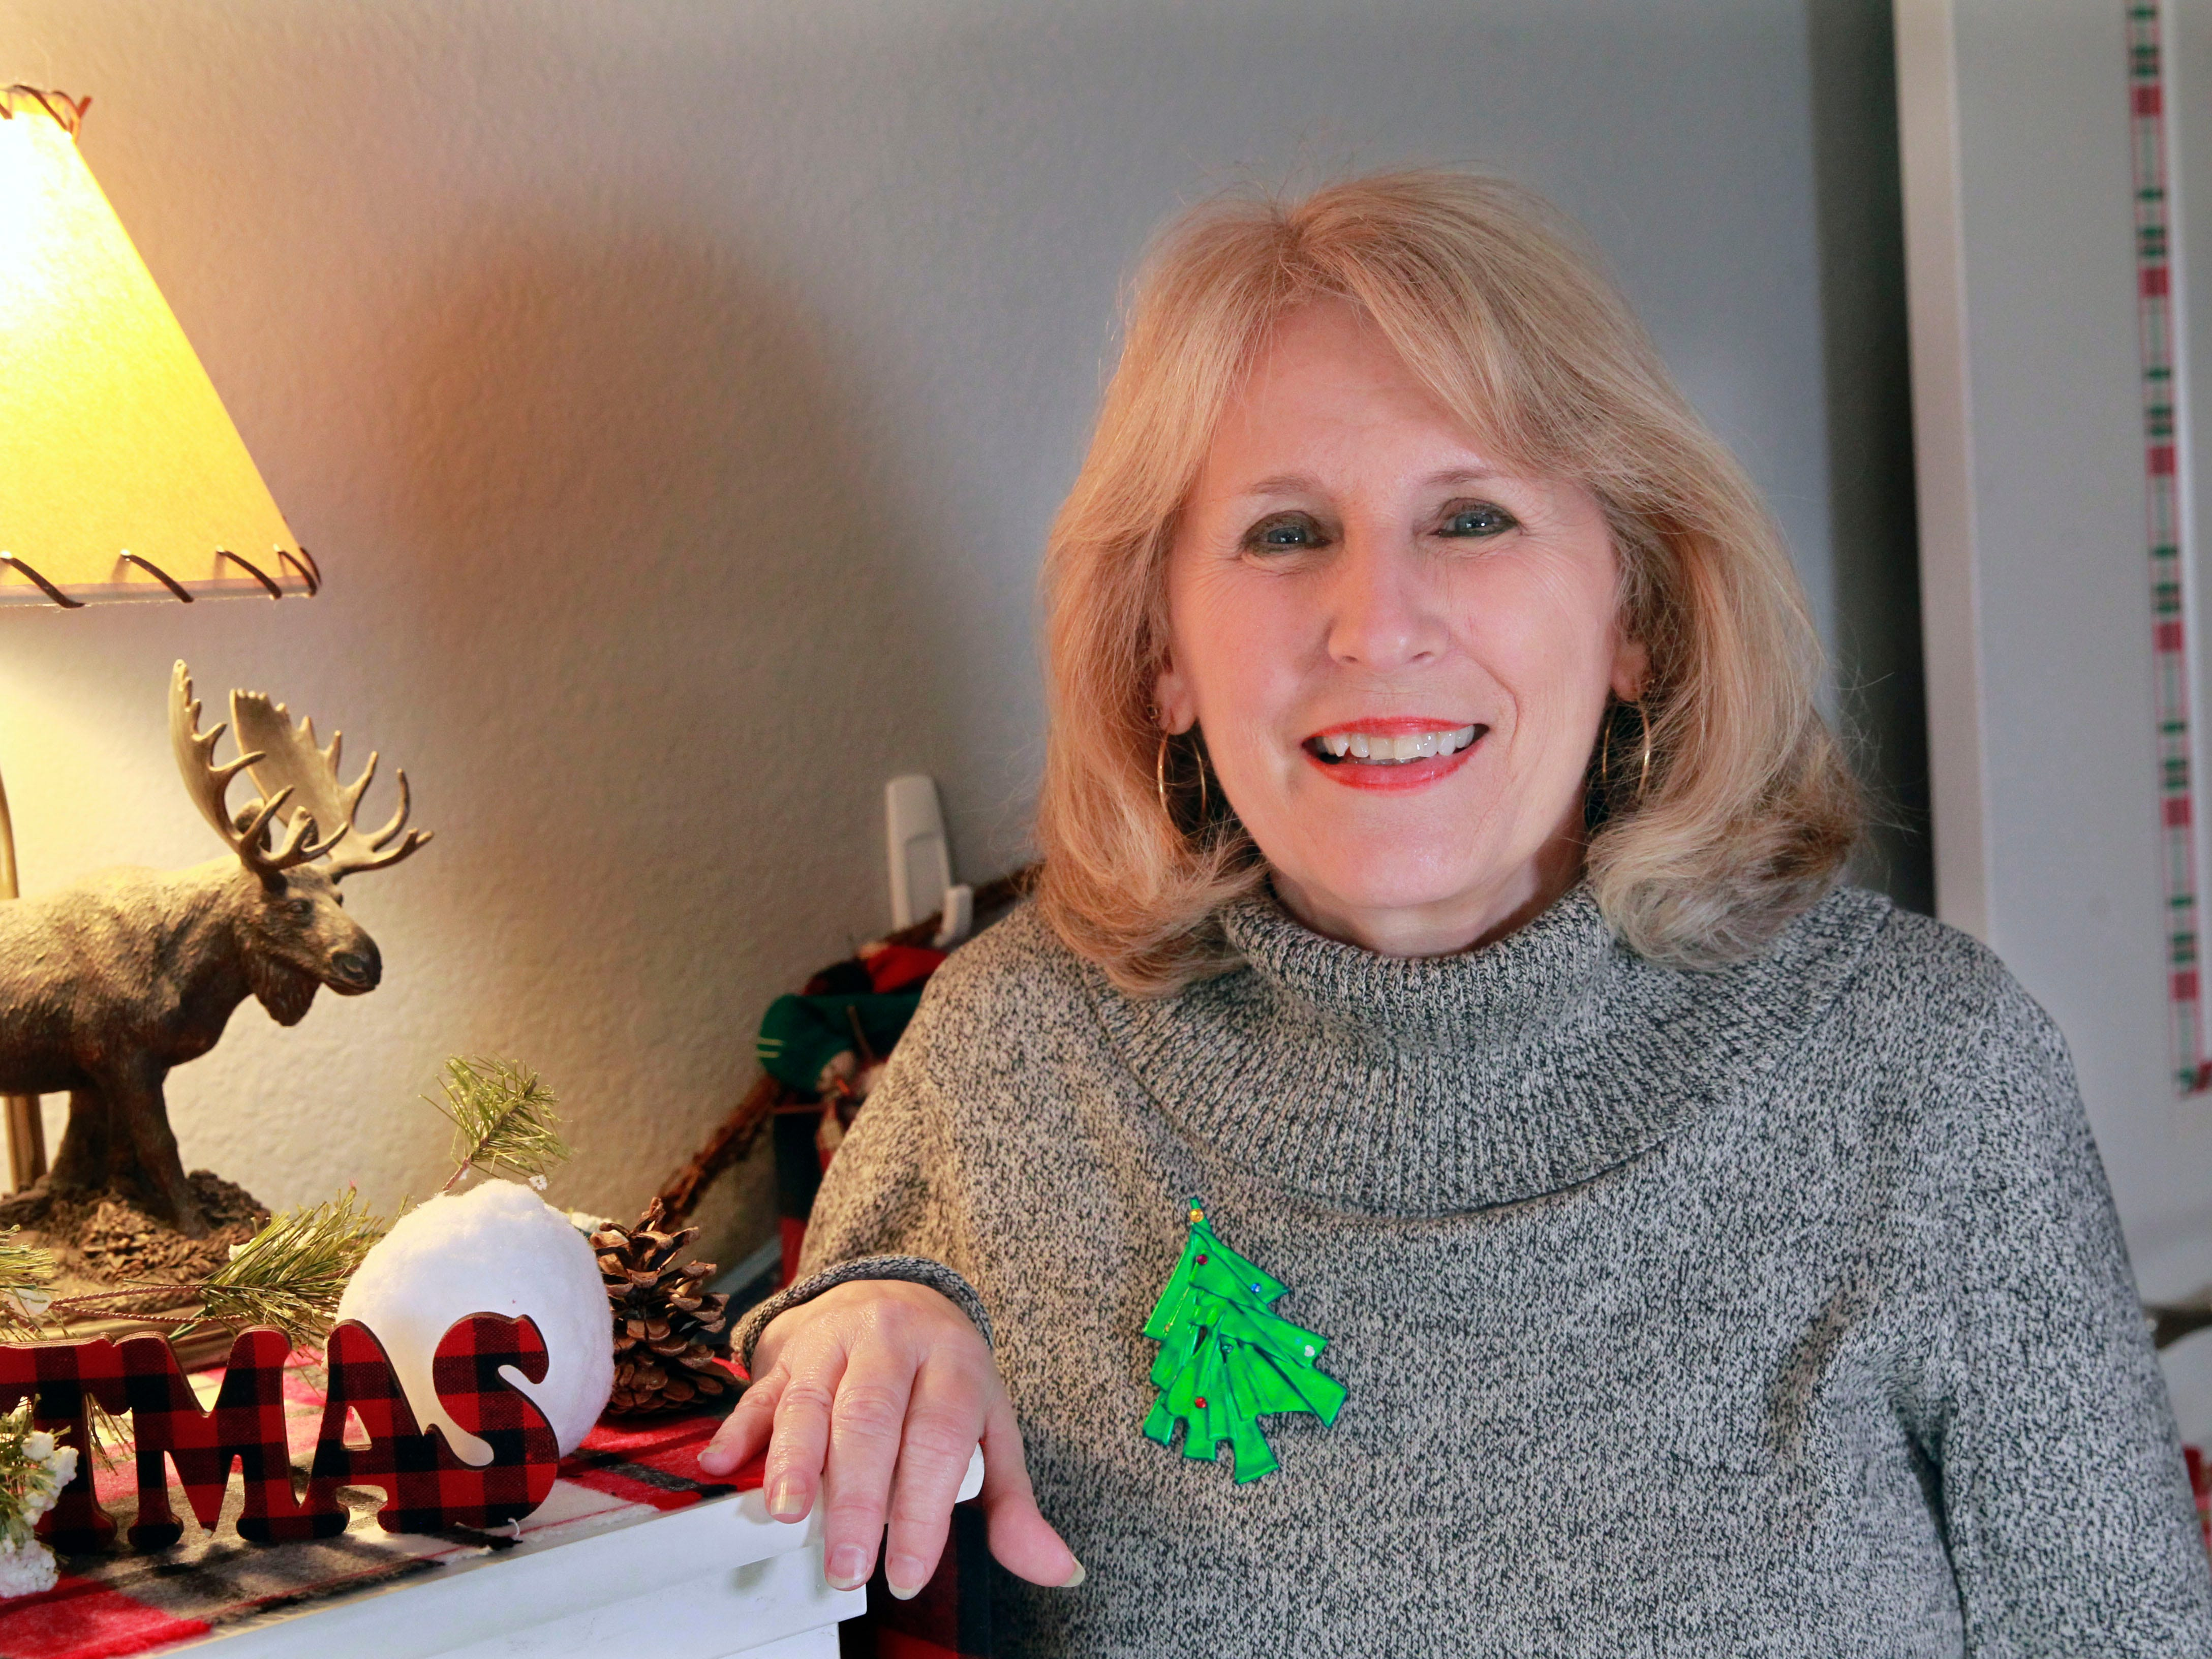 Nikki Bruneau, working with Nancy Buntrock, decorated a child's room with a snow day theme.